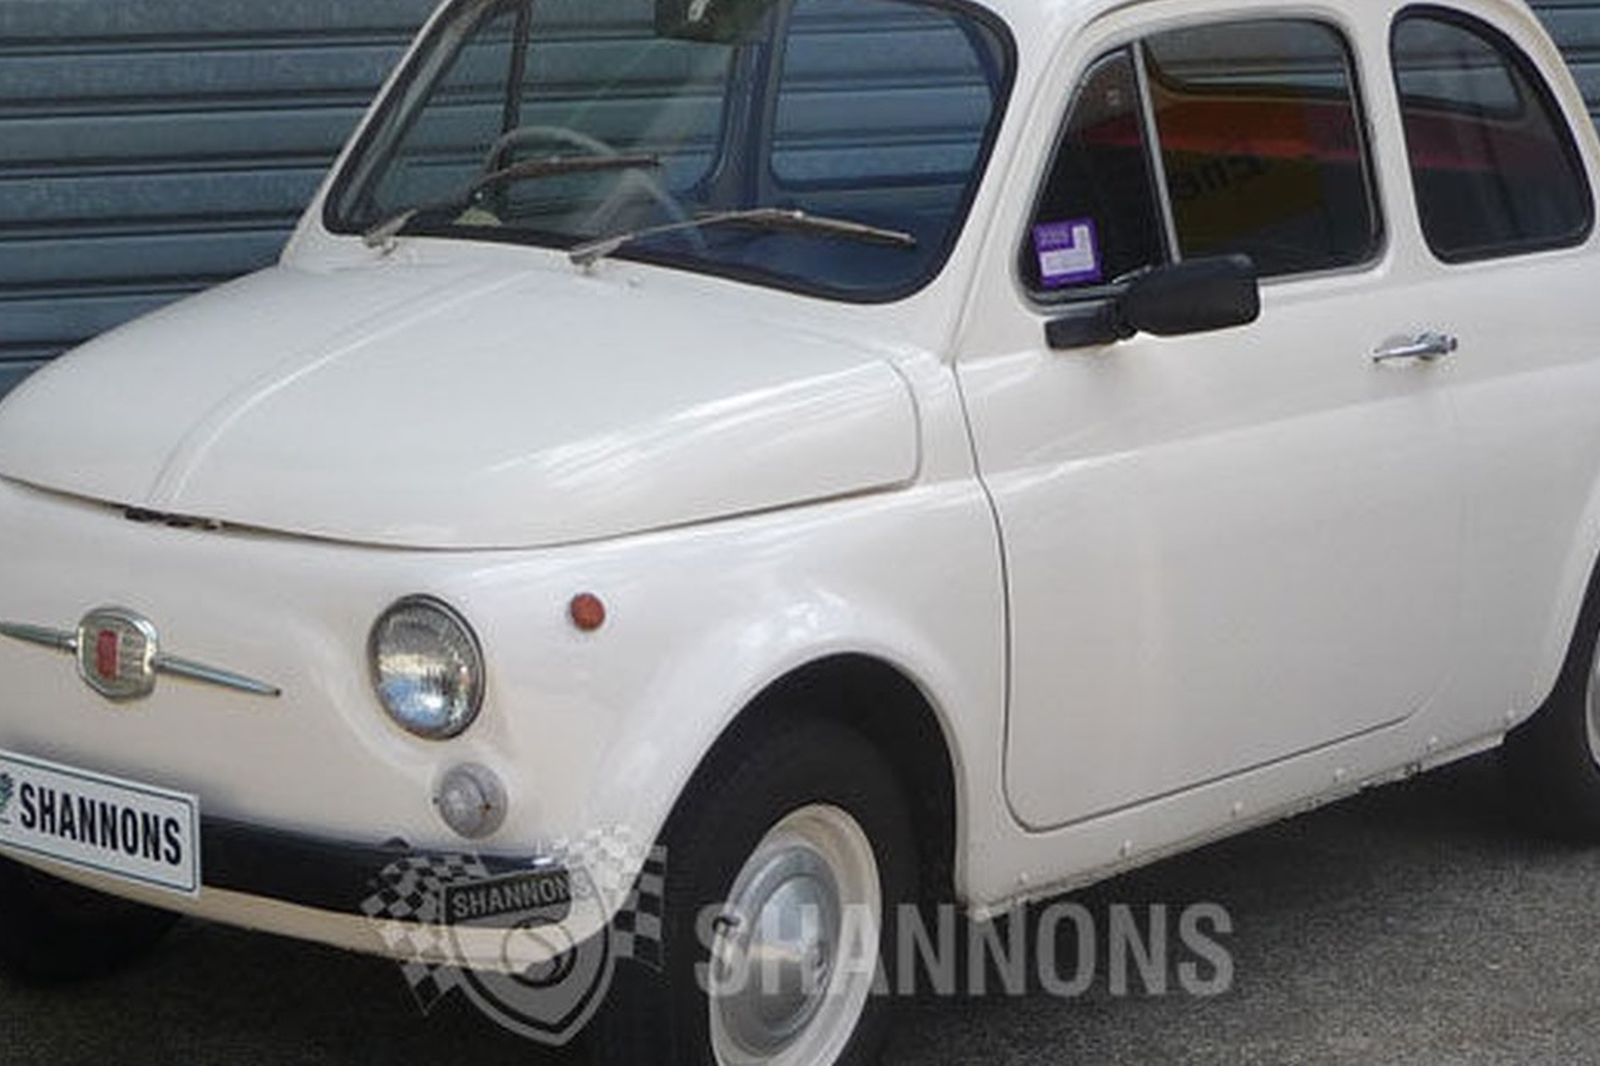 Sold: Fiat 500 Bambino Sedan Auctions - Lot 8 - Shannons